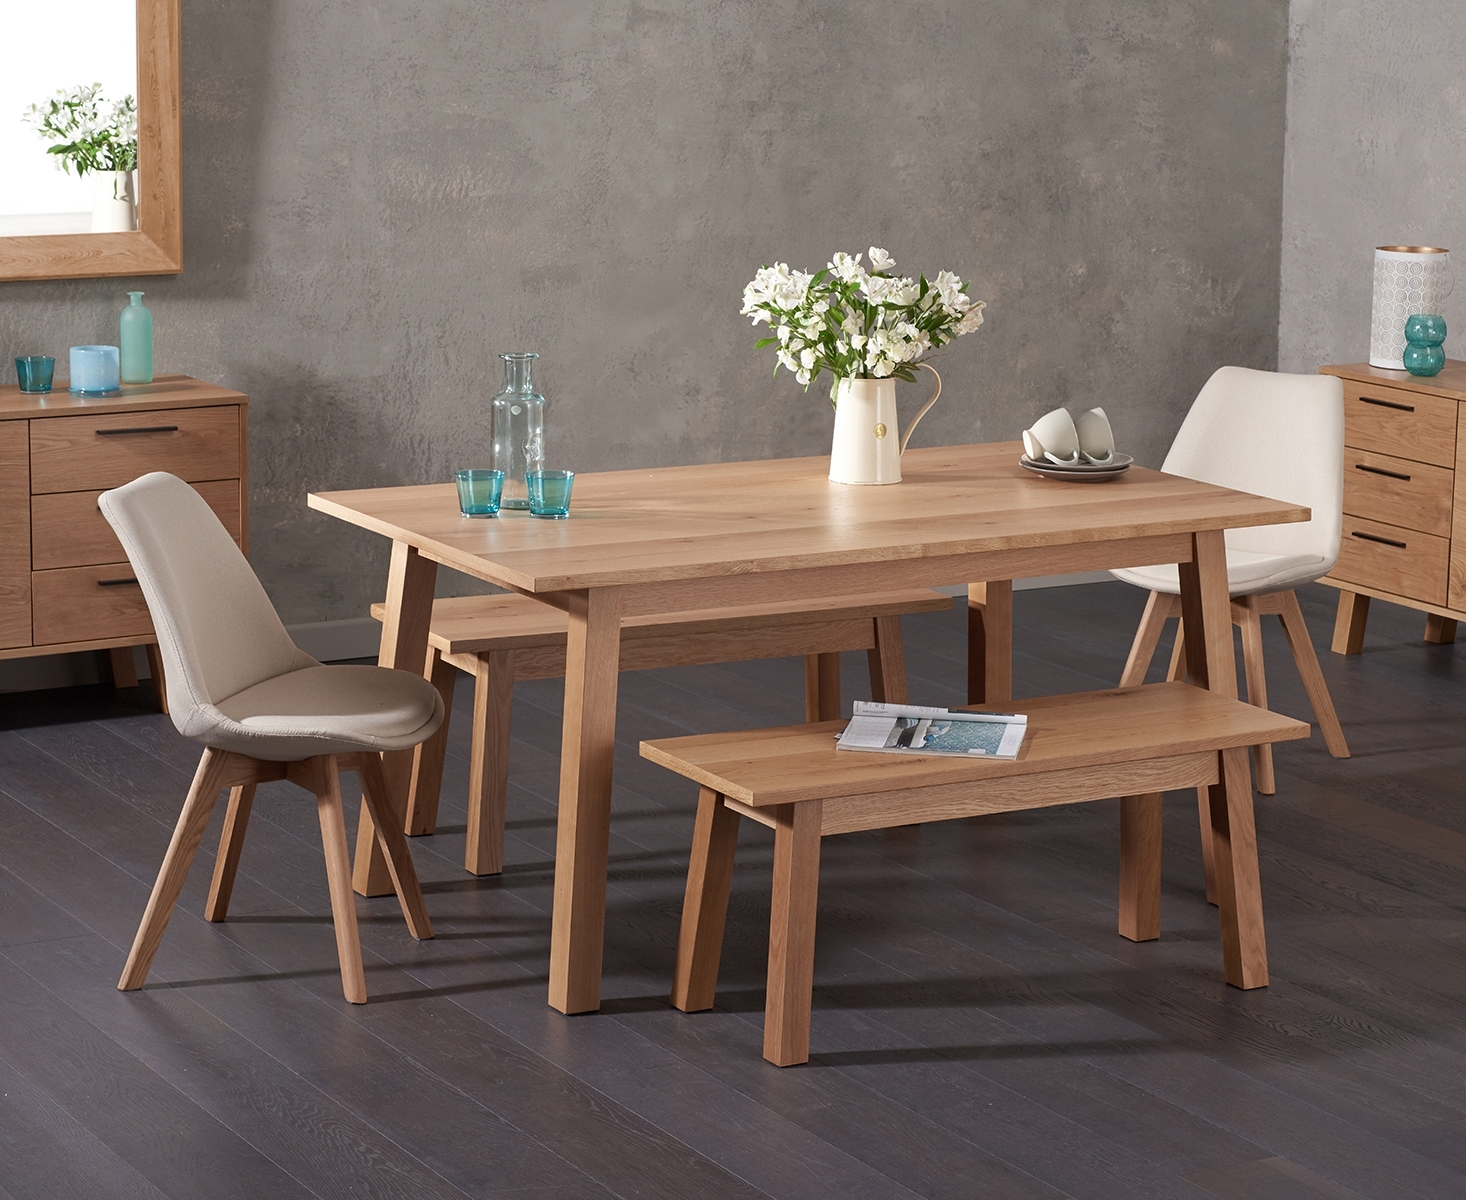 Agata 160cm Oak Dining Table with Demi Fabric Chairs and Agata Benches